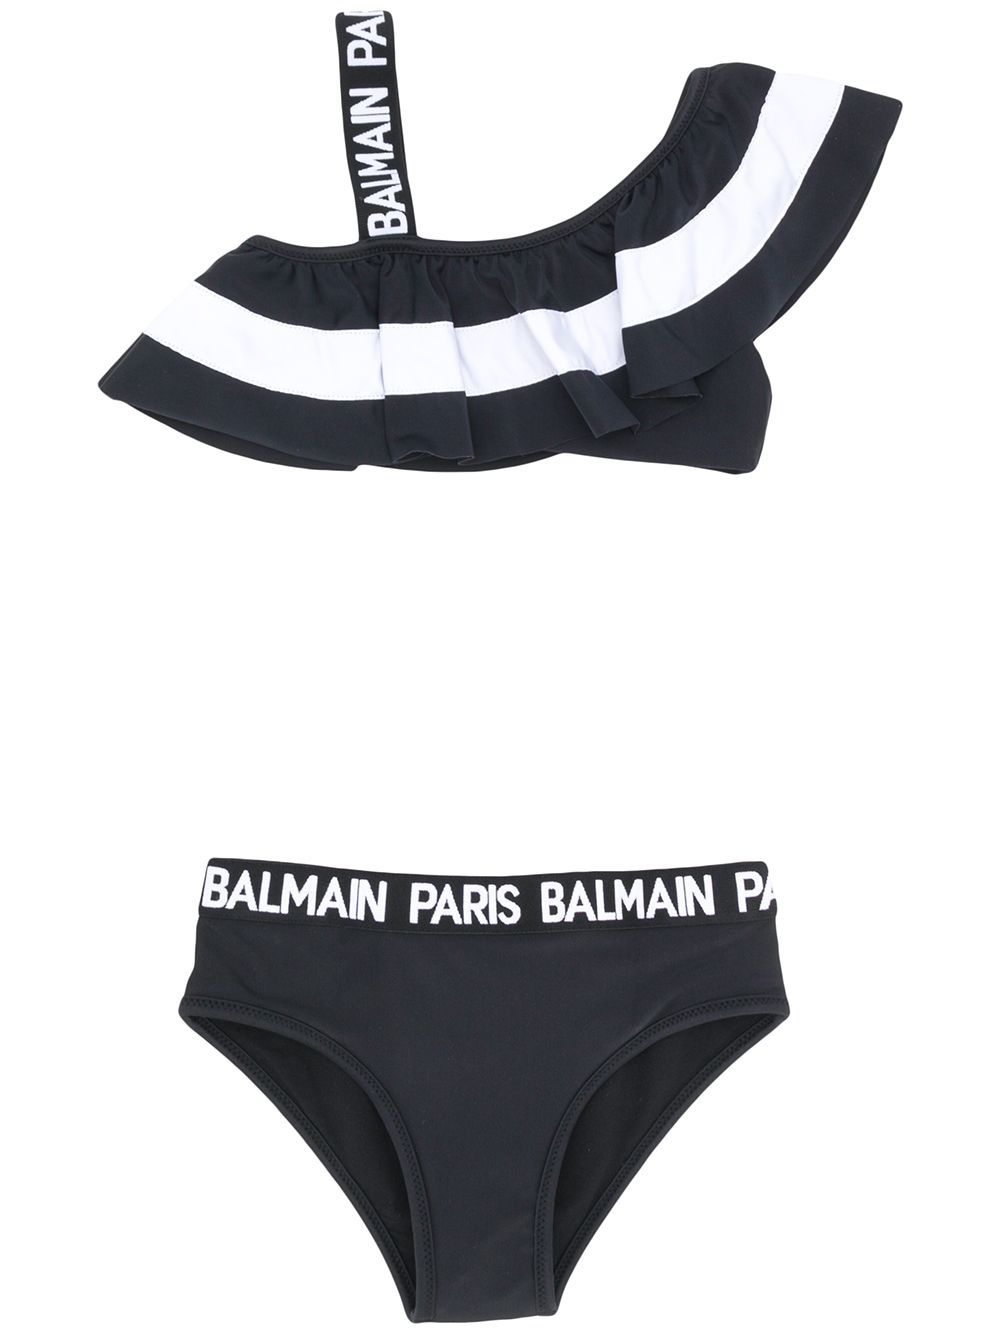 BALMAIN KIDS asymmetric bikini black/white - Maison De Fashion